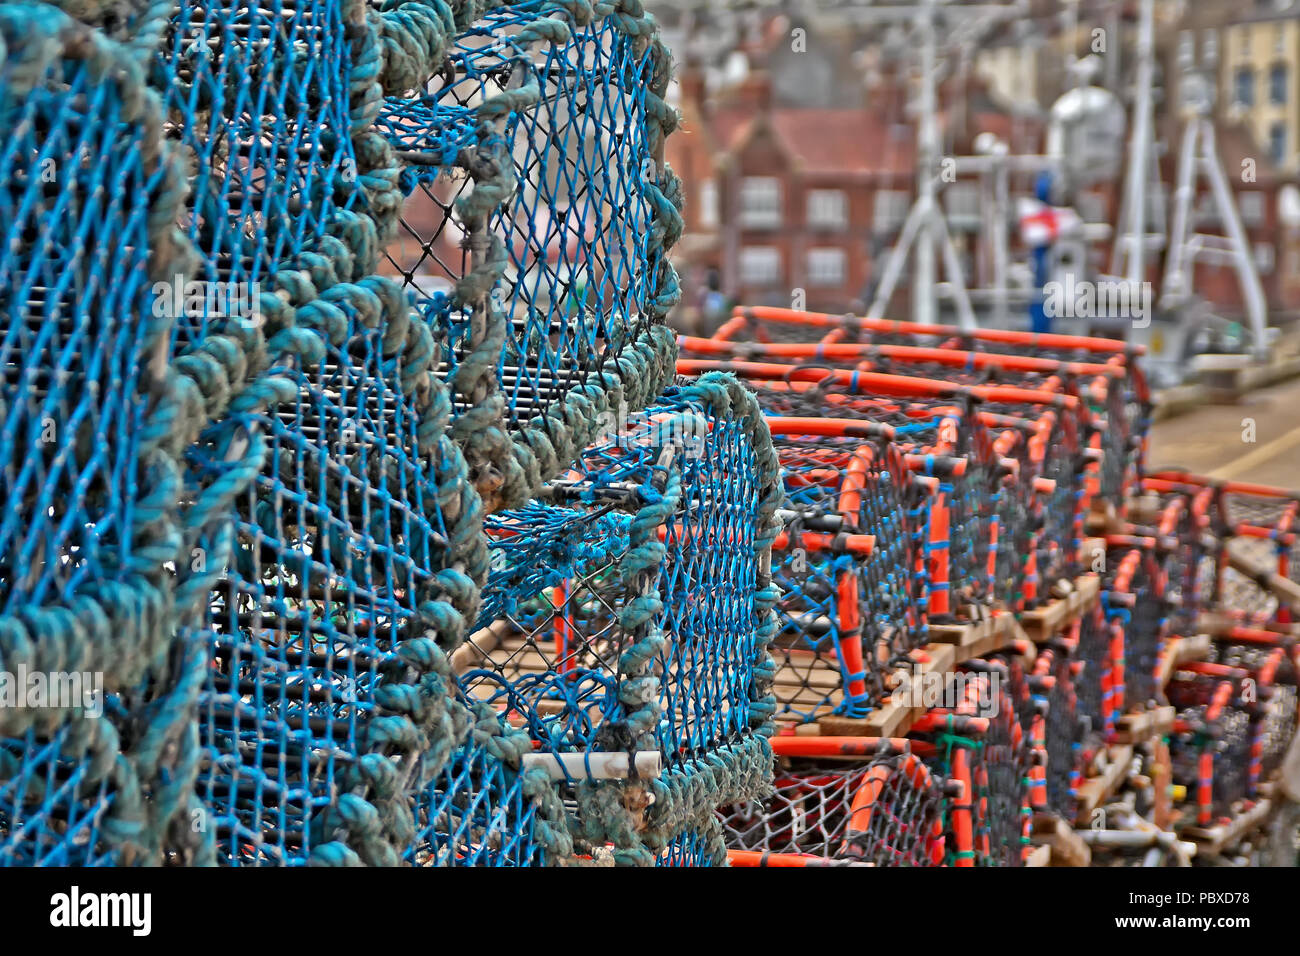 Lobster and crab pots piled high along the dock side of Scarborough's harbour. Stock Photo